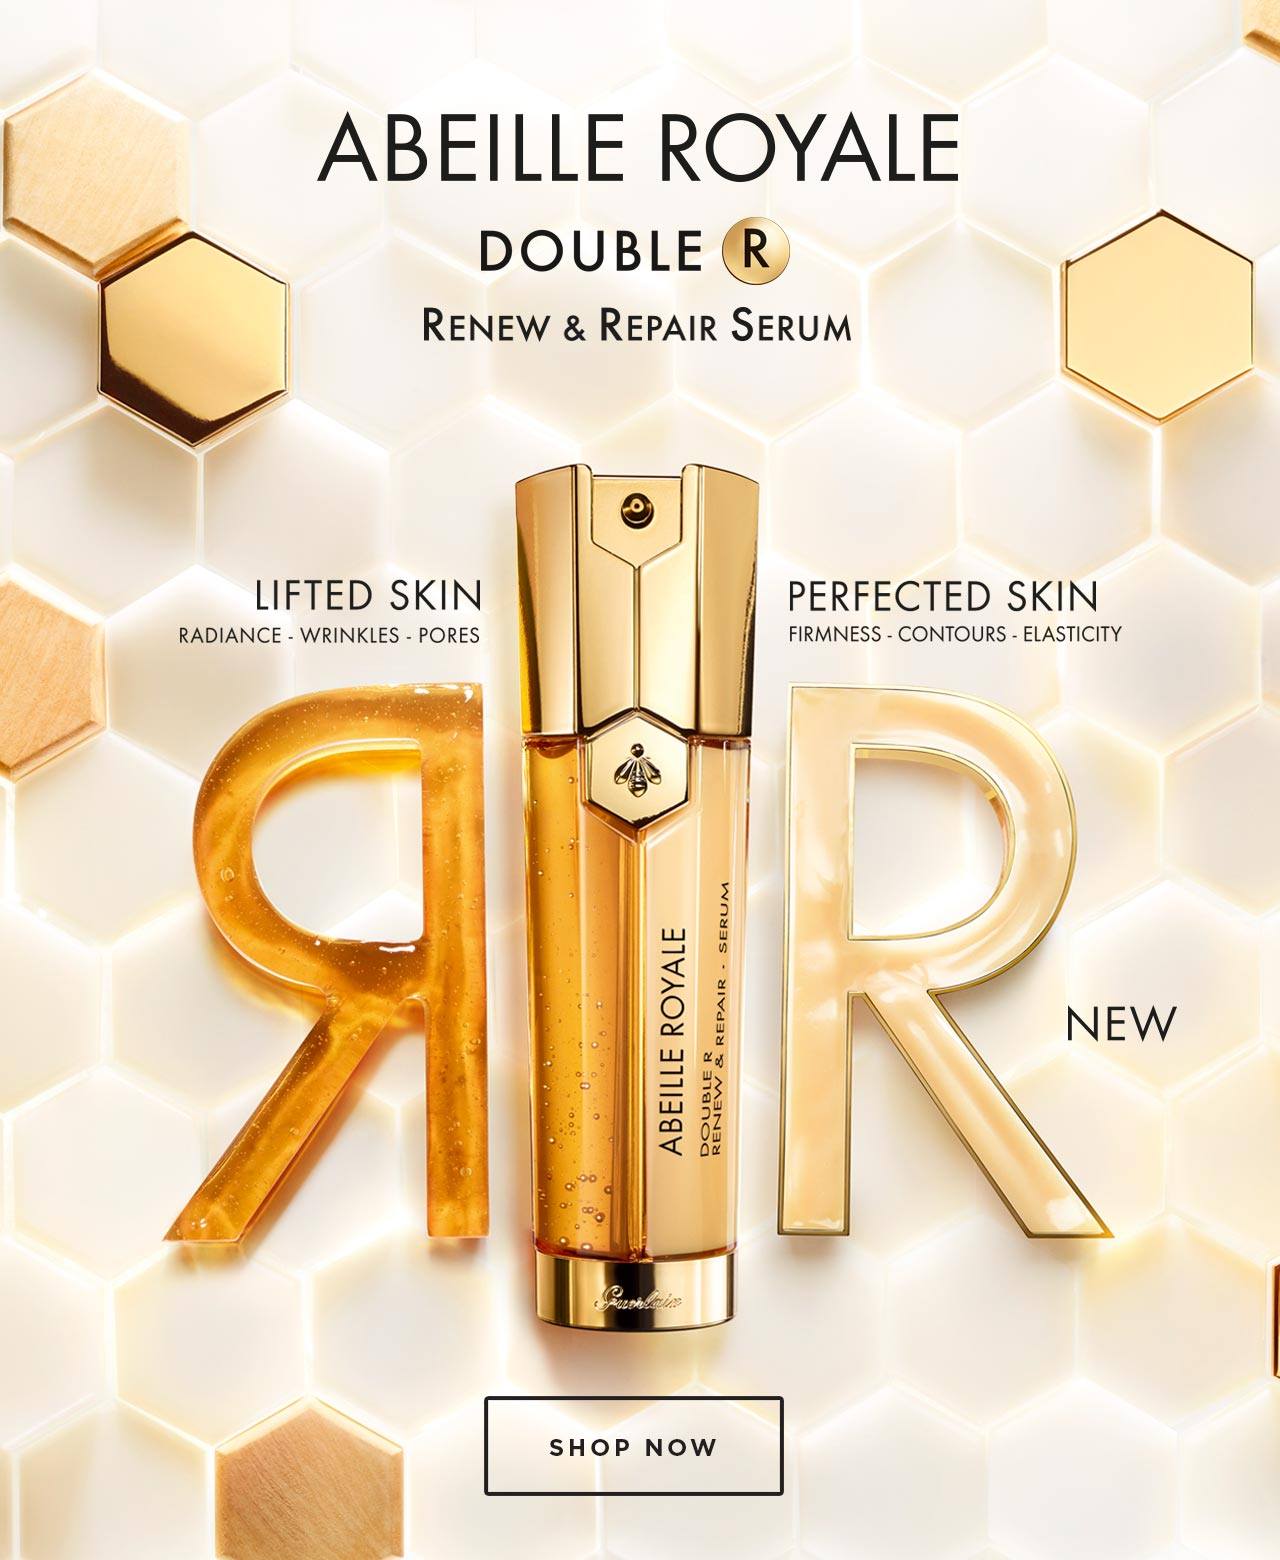 Abeille Royale Double R. Shop Now.